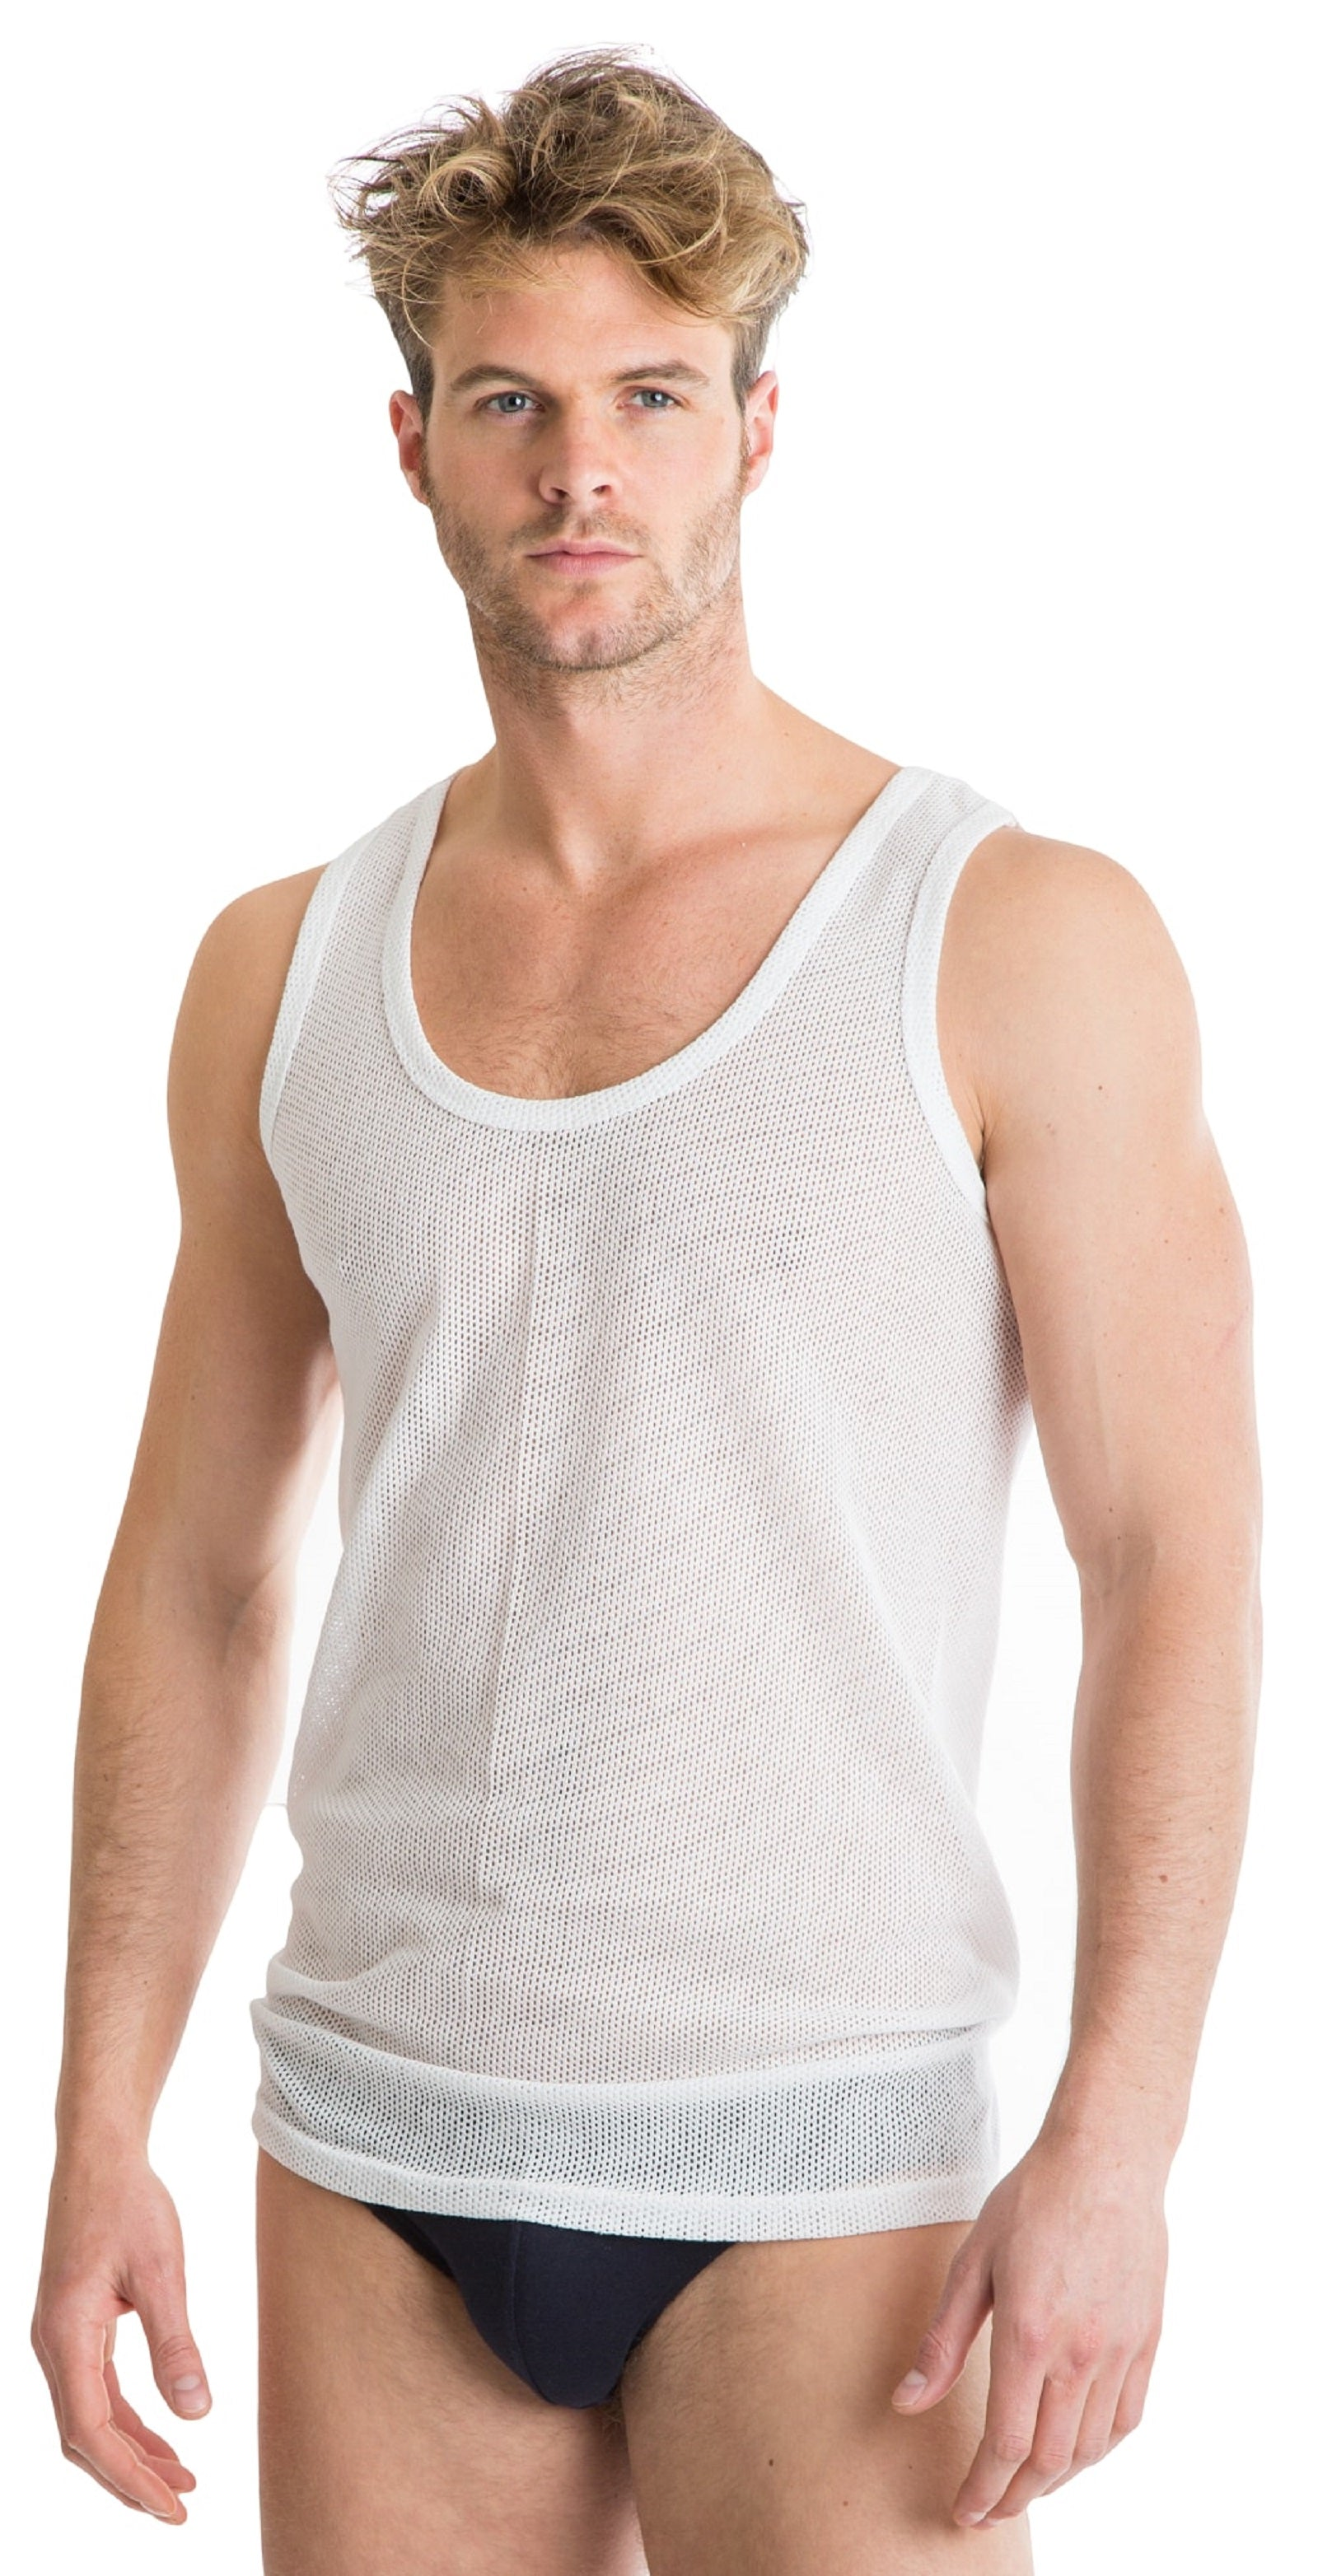 OCTAVE 2 Pack Mens Cotton Rich Classic Eyelet String Mesh Net Sleeveless Vests